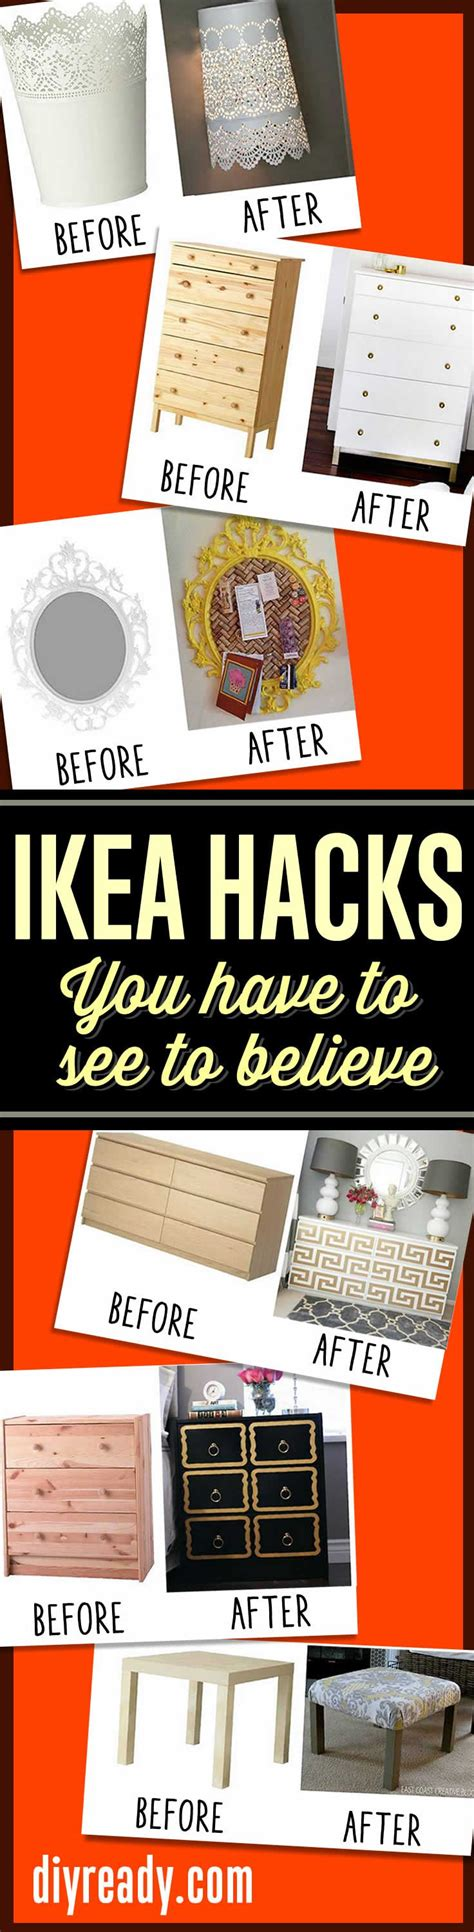 hacking ideas decor hacks ikea hack ideas ikea furniture hacks you